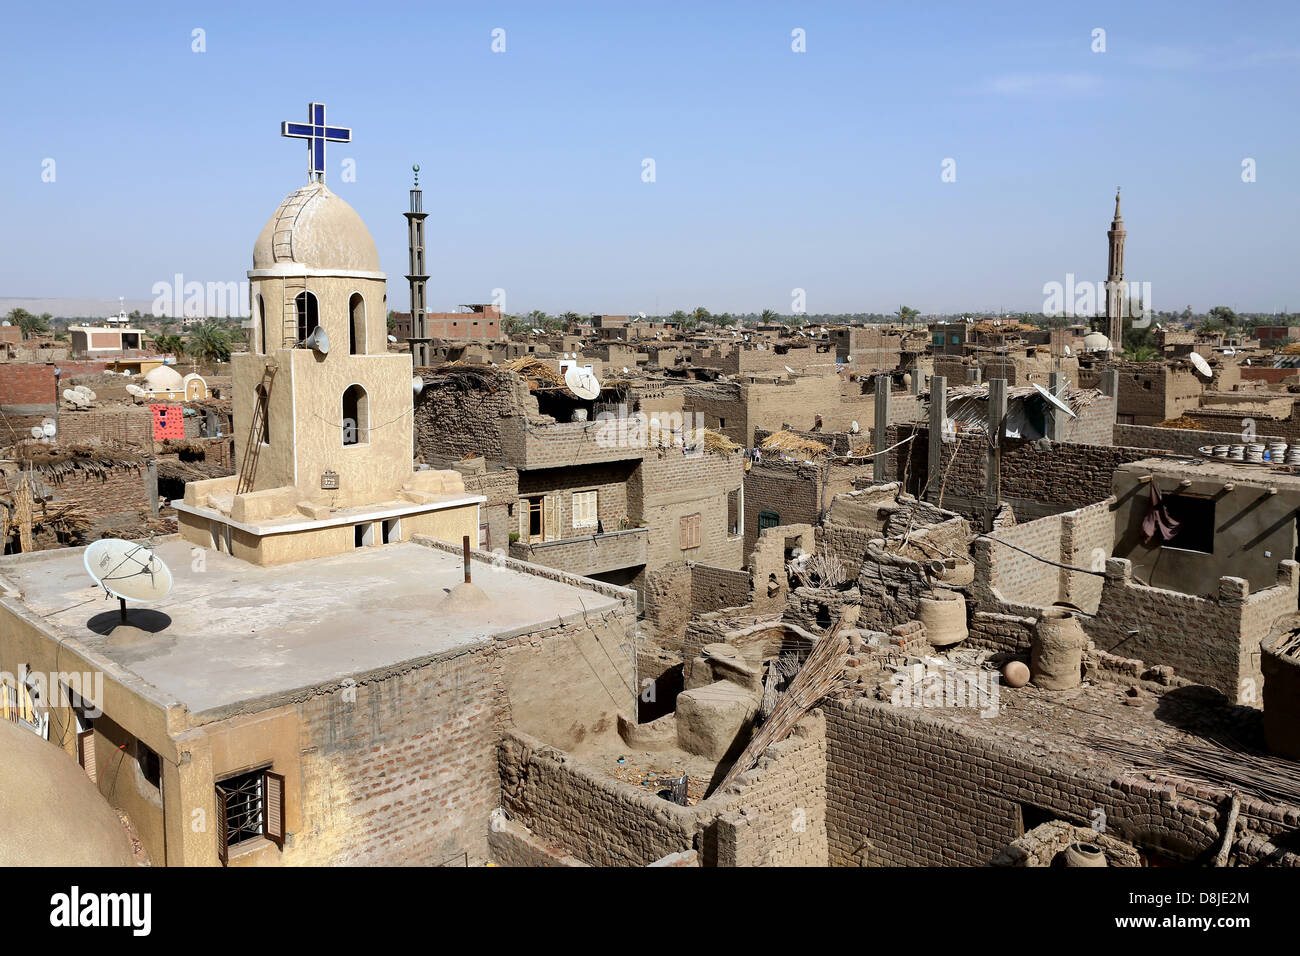 Christian cross on a coptic church and cresent on the minaret of a muslim mosque in Upper Egypt - Stock Image